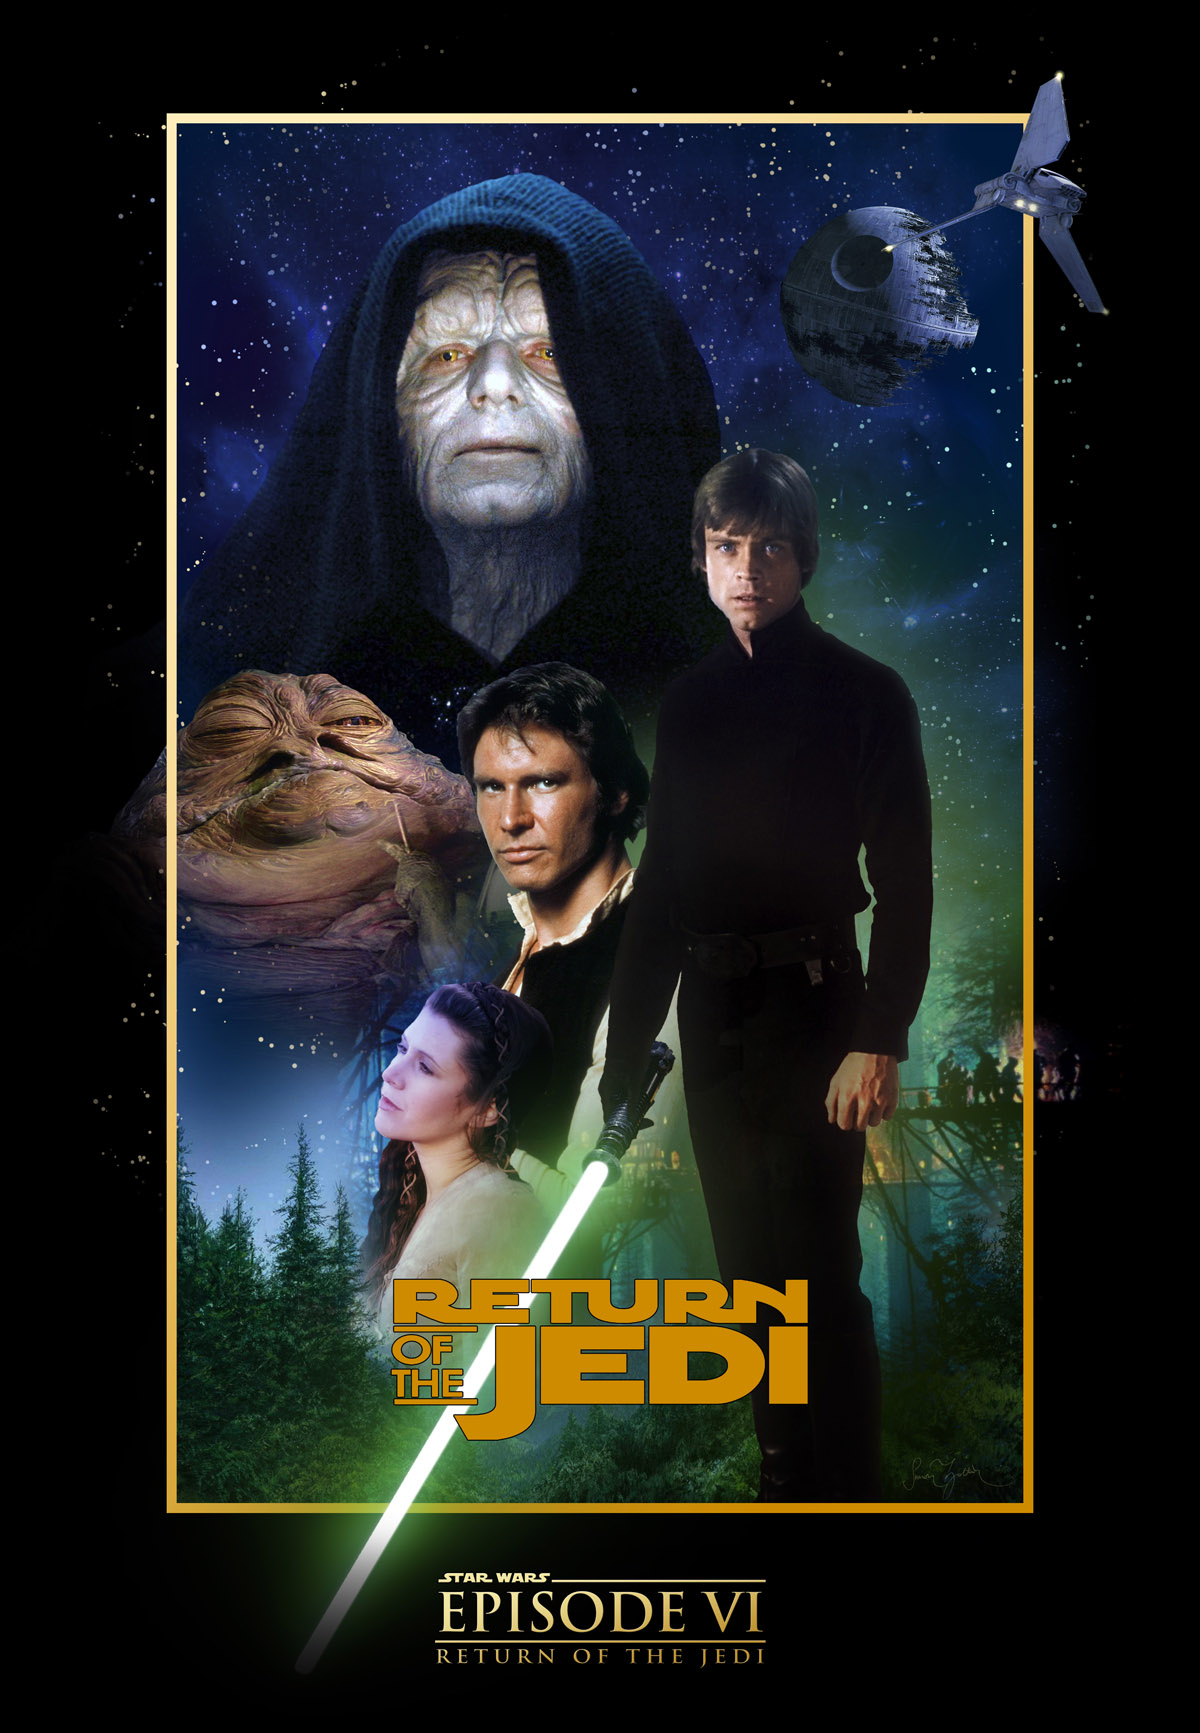 Star Wars Return of the Jedi poster4